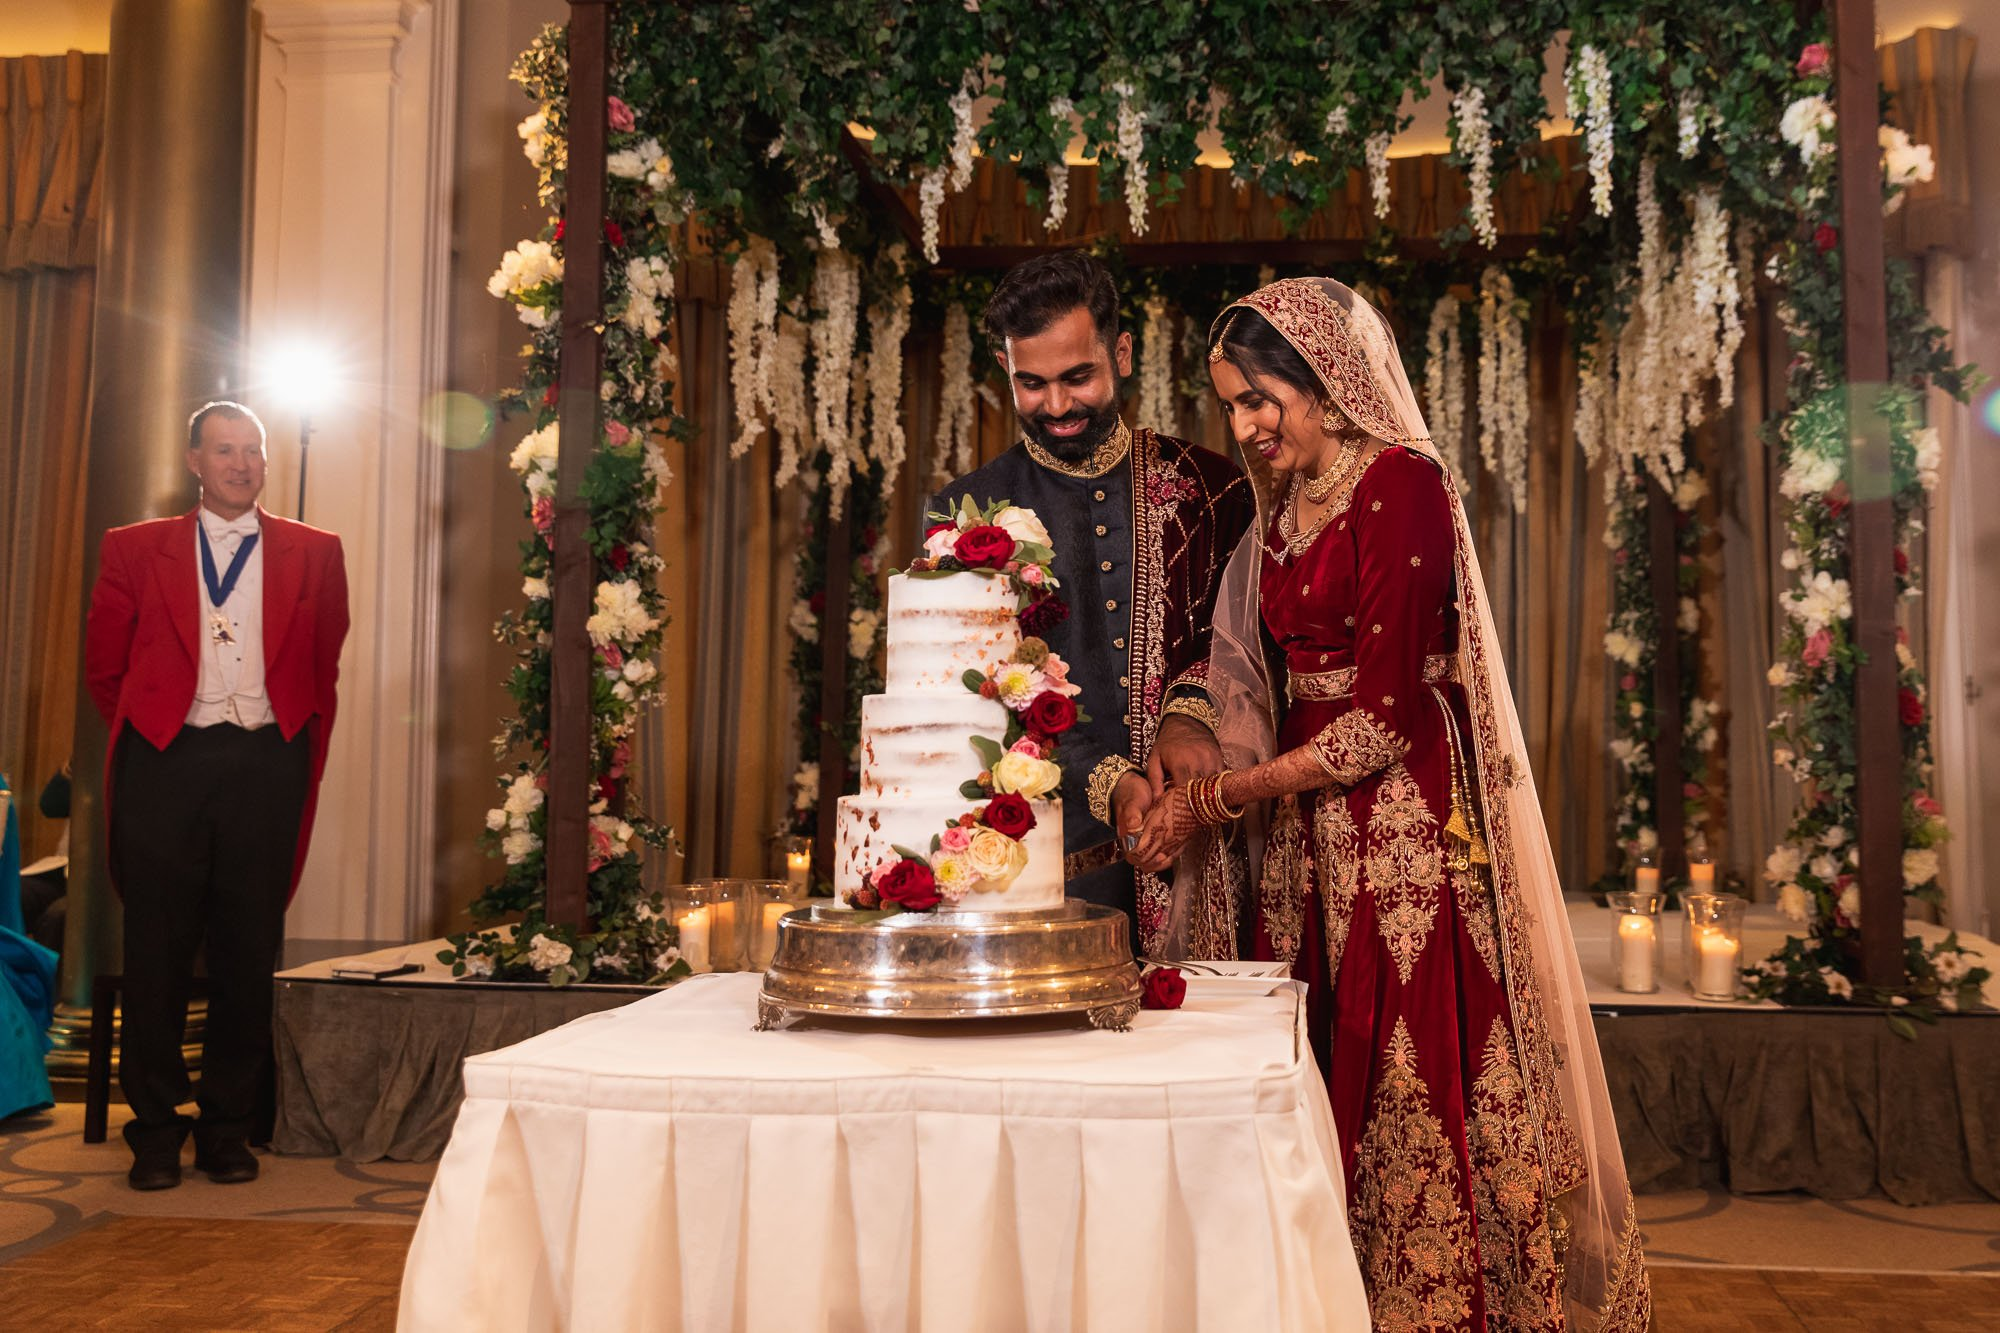 Rudding Park, Yorkshire, Asian Wedding Photography, cake cutting